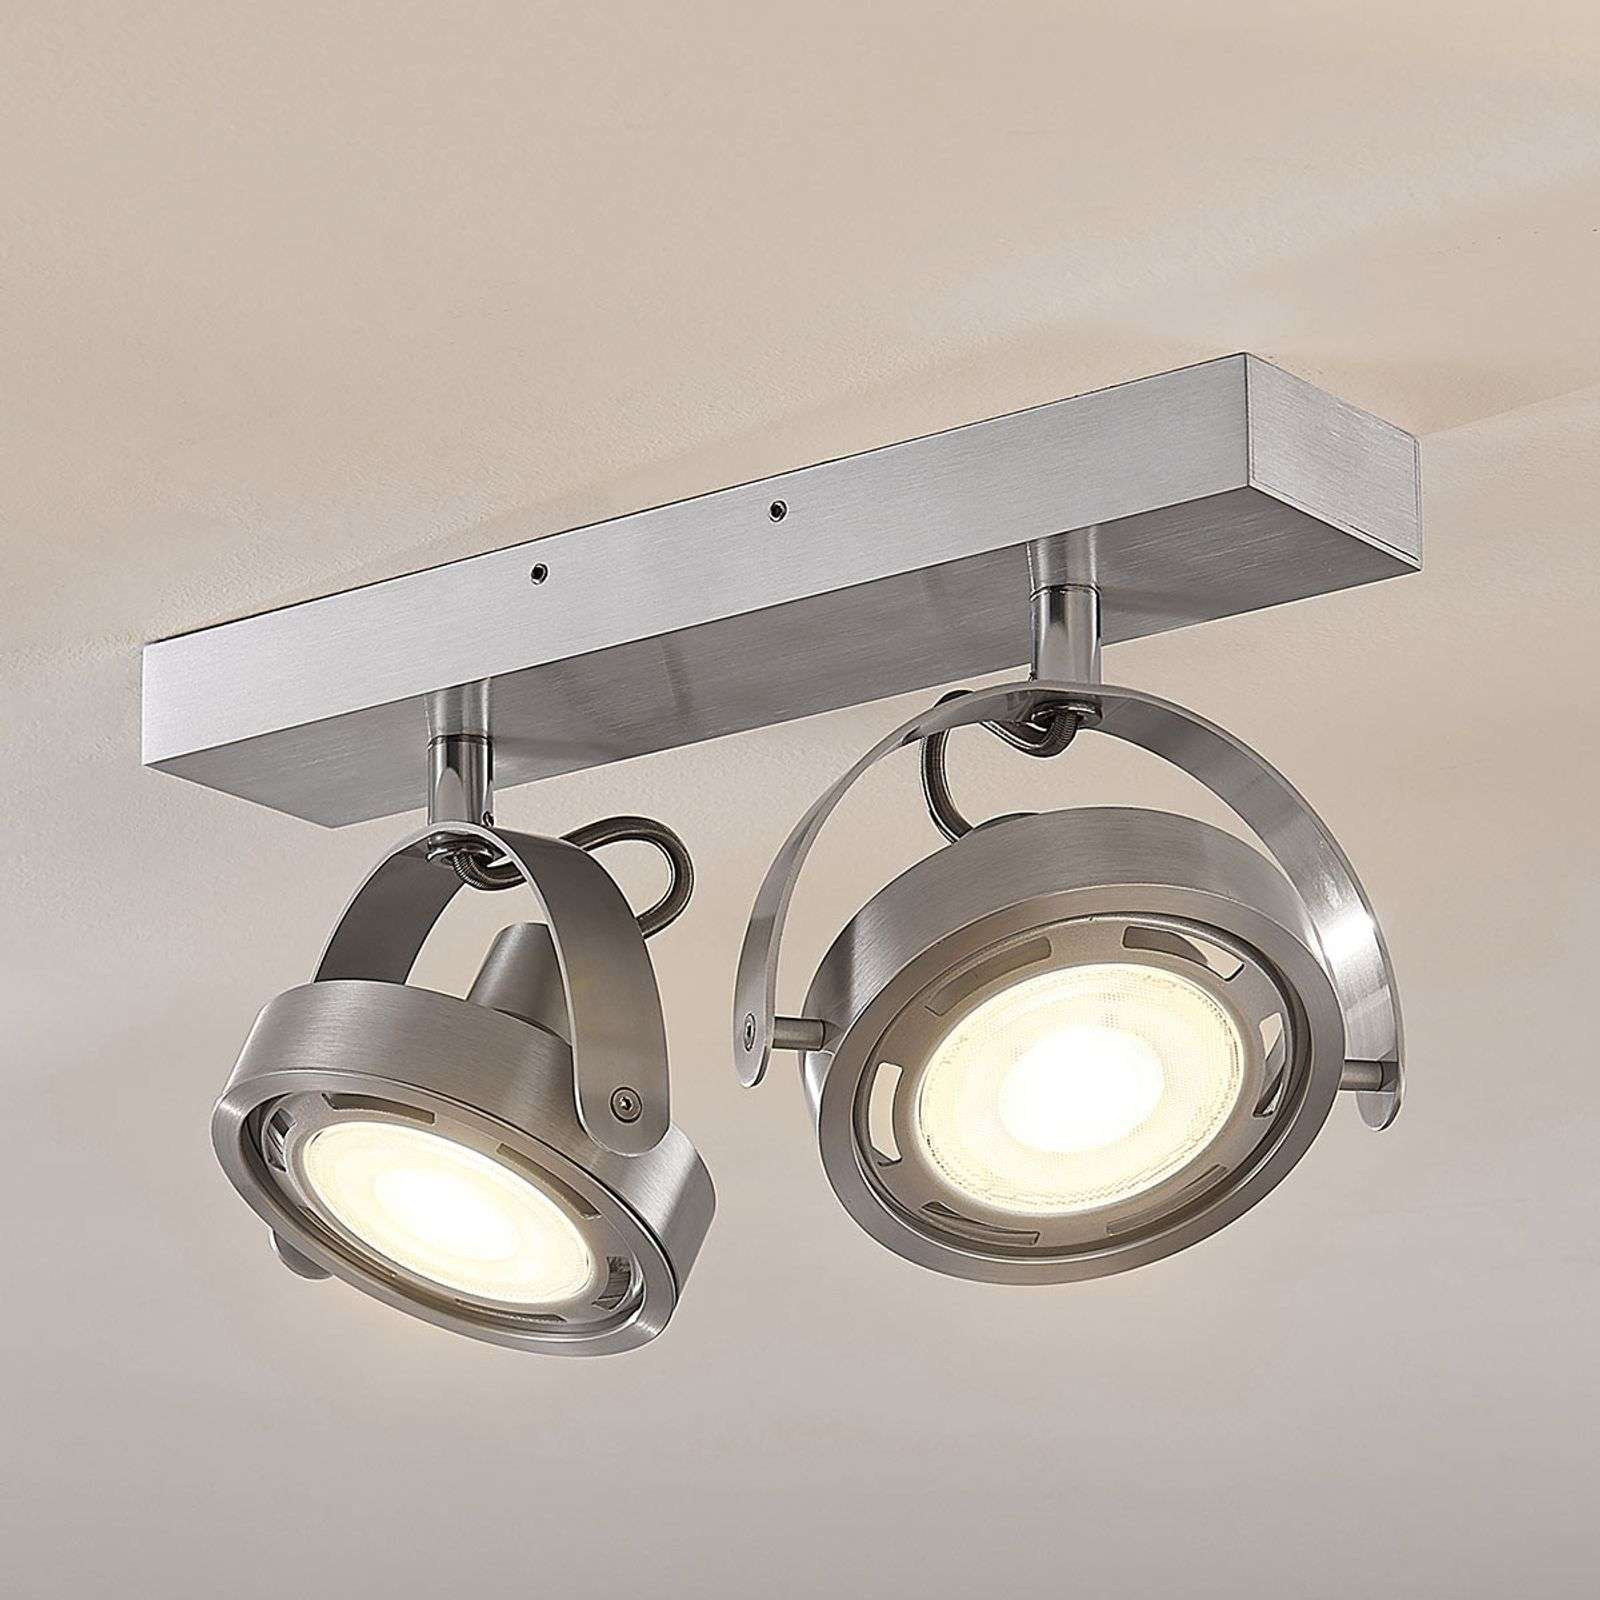 LED spot Munin, dimbaar, aluminium, 2-lamps